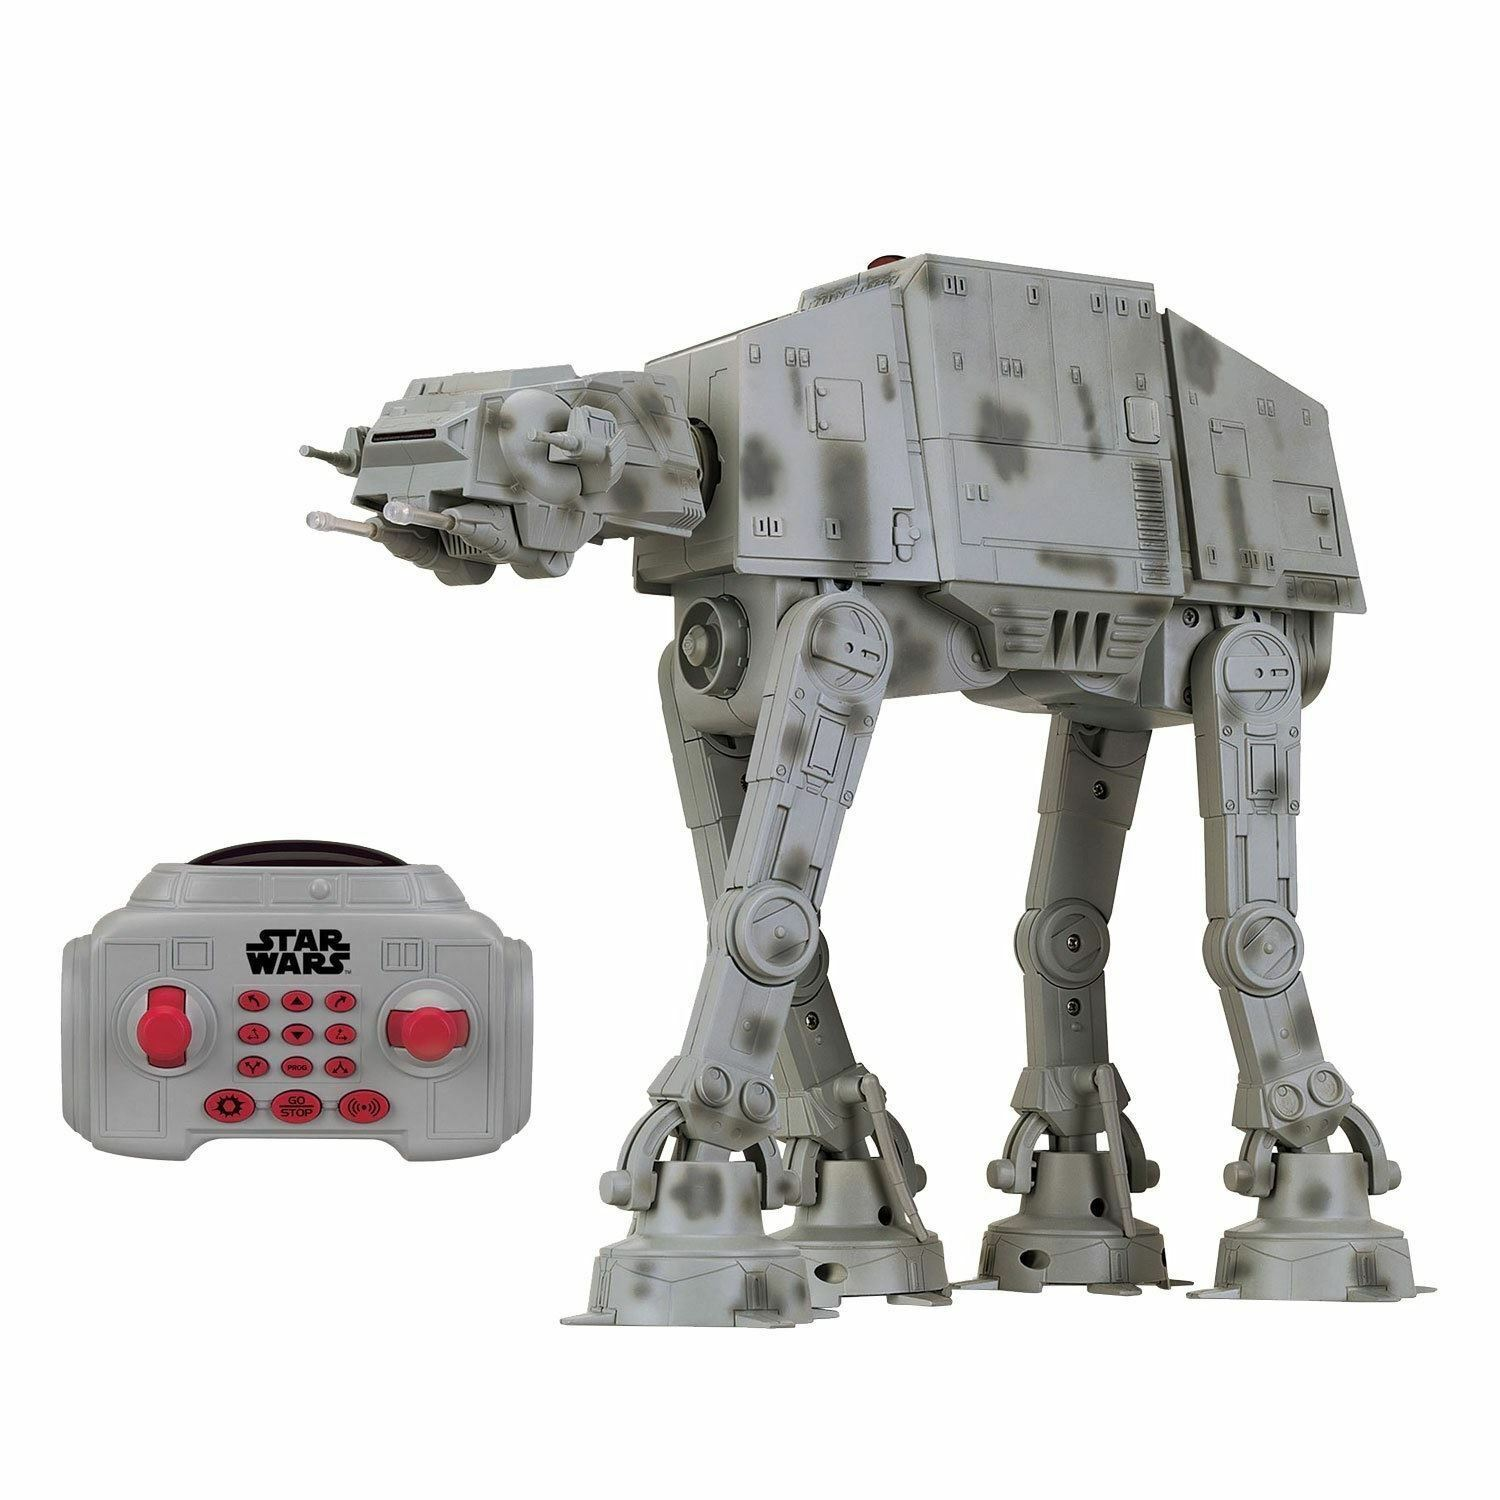 Star Wars AT-AT Remote Control Vehicle Sound & Light Up U-Command RC Toy